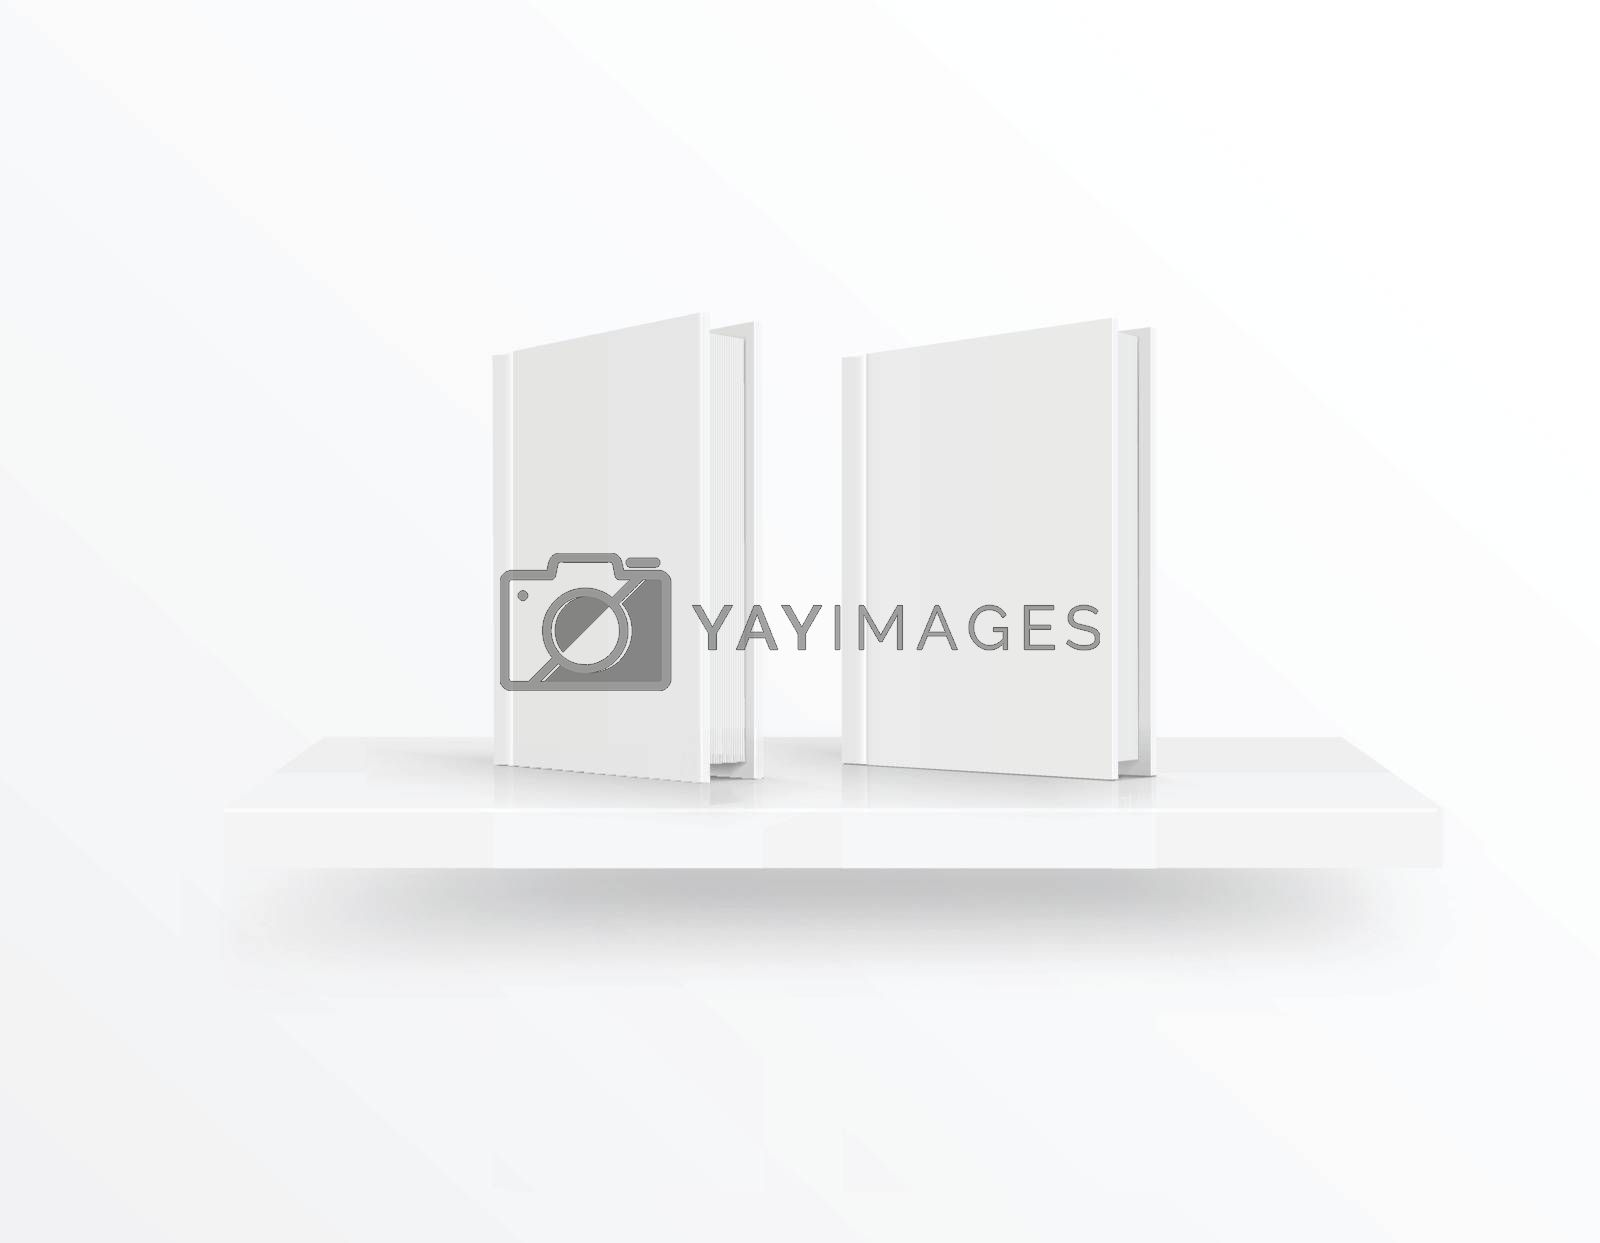 Blank book cover on bookshelf over light background. Vector illustration